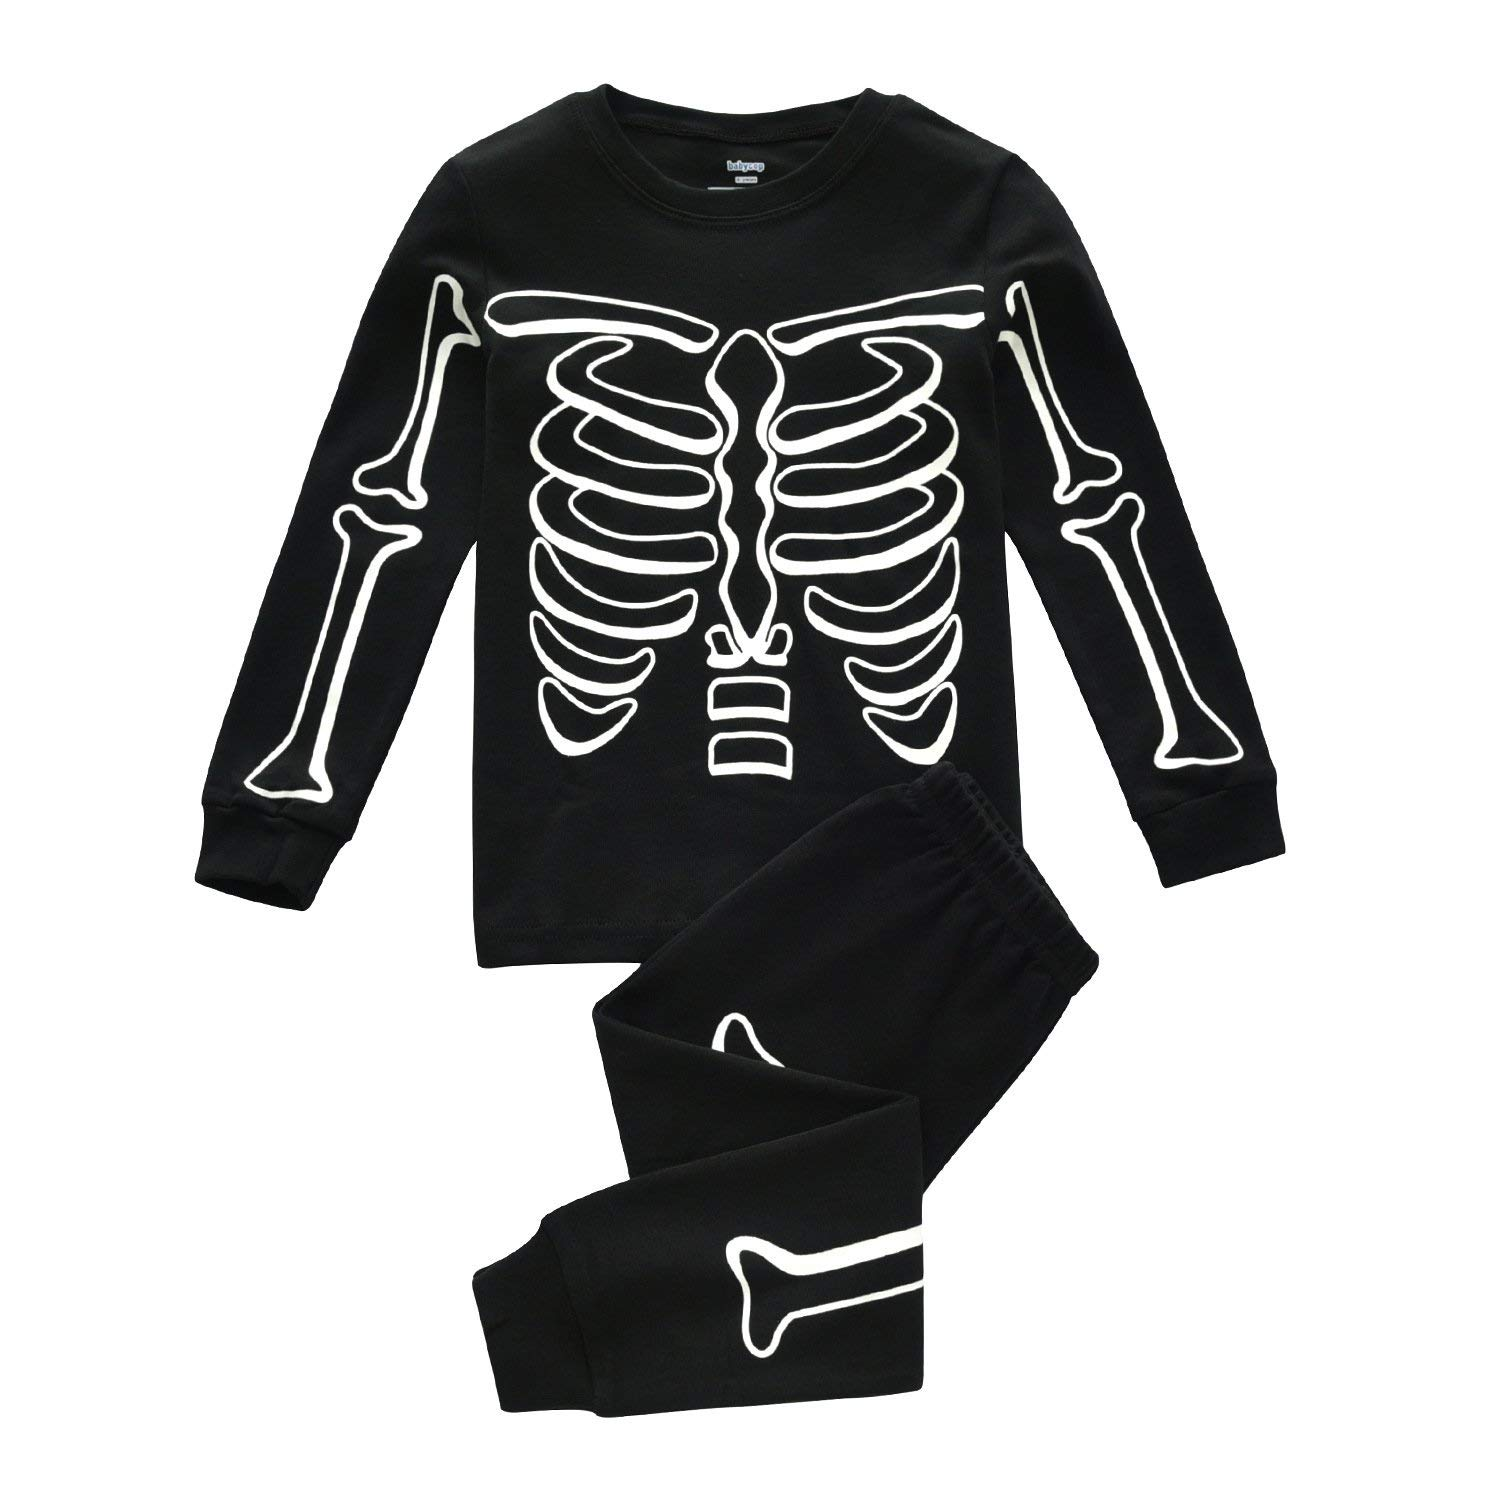 DDSOL Kids Pajamas for Boys Skeleton Glow-in-The-Dark Cotton Sleepwear Toddler Clothes Halloween Outfit Size 2-7T